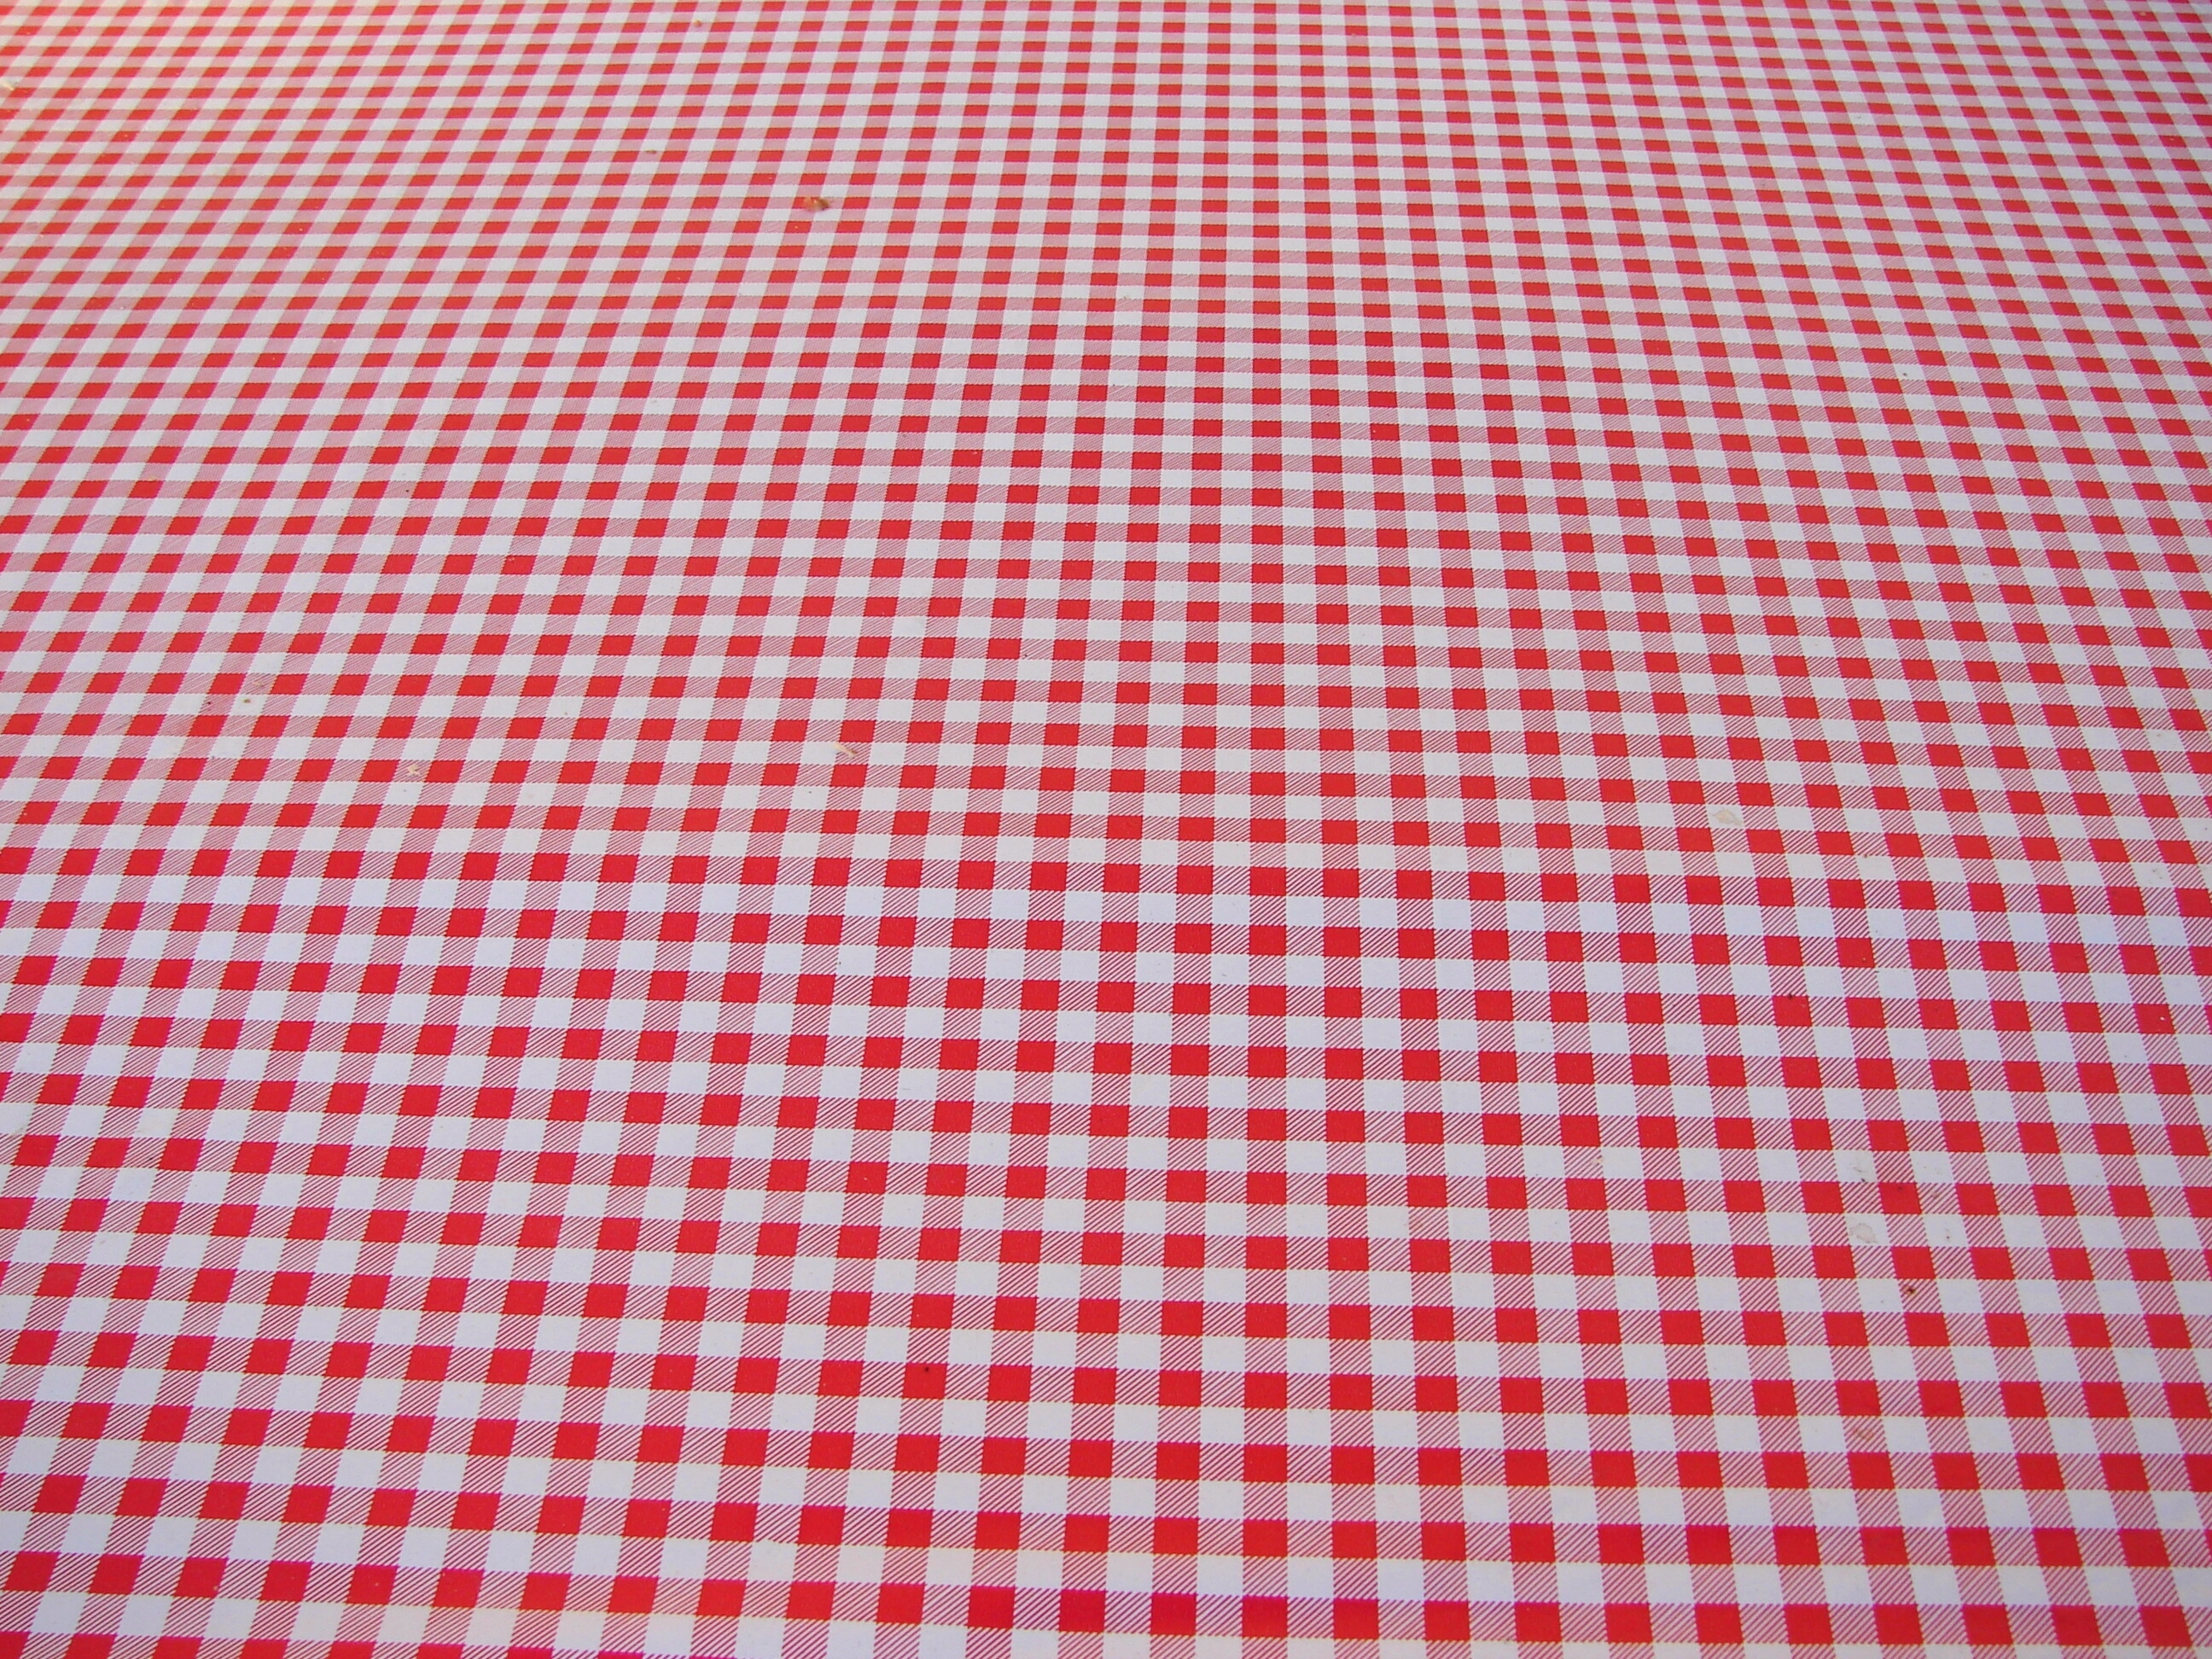 Checkered Cloth Tablecloth : Red White Checked Tablecloth by FantasyStock on DeviantArt